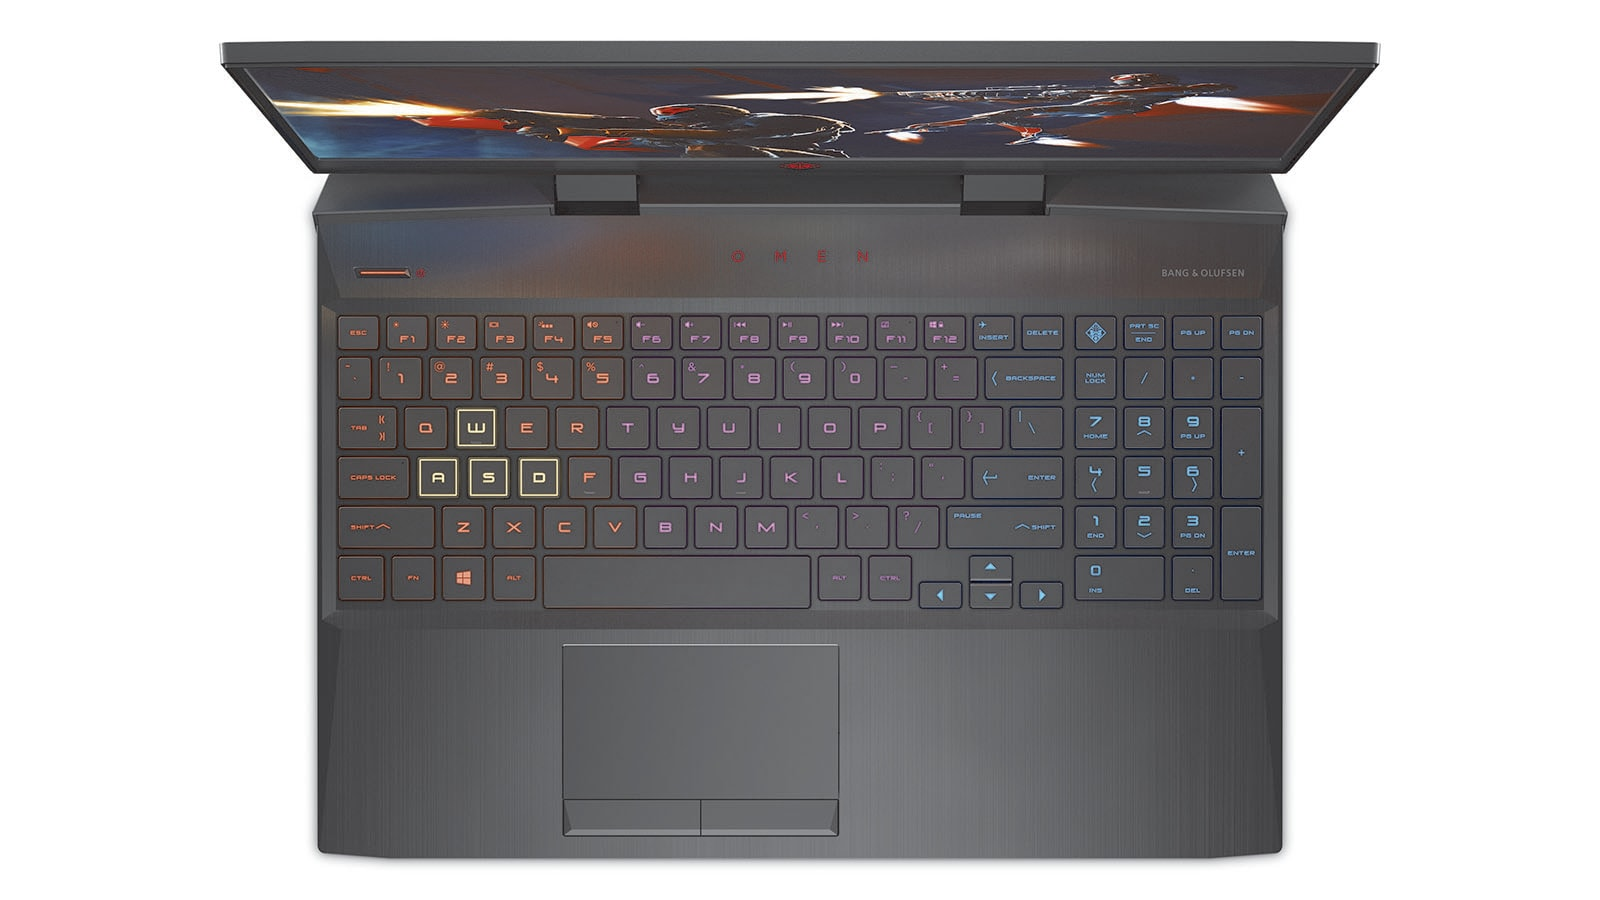 HP Omen 15 gaming laptop